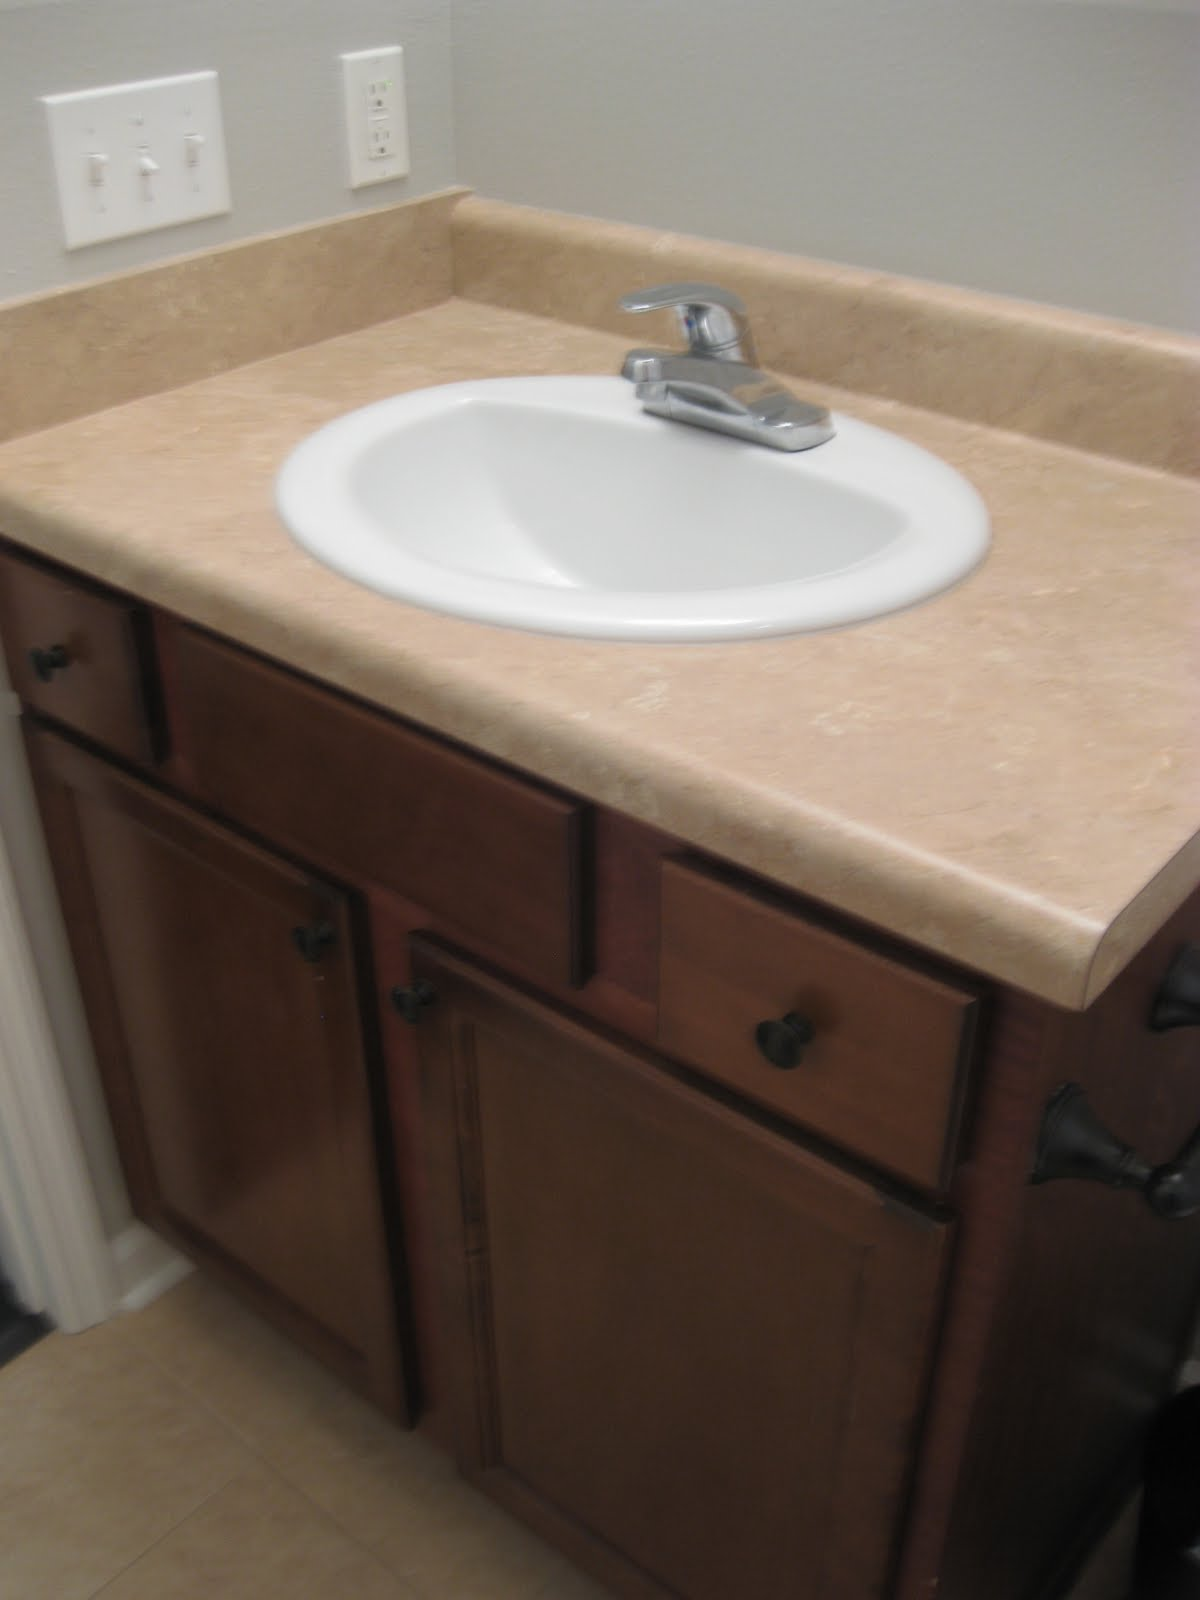 Home depot bathroom paint home painting ideas for Home depot kitchen painting ideas